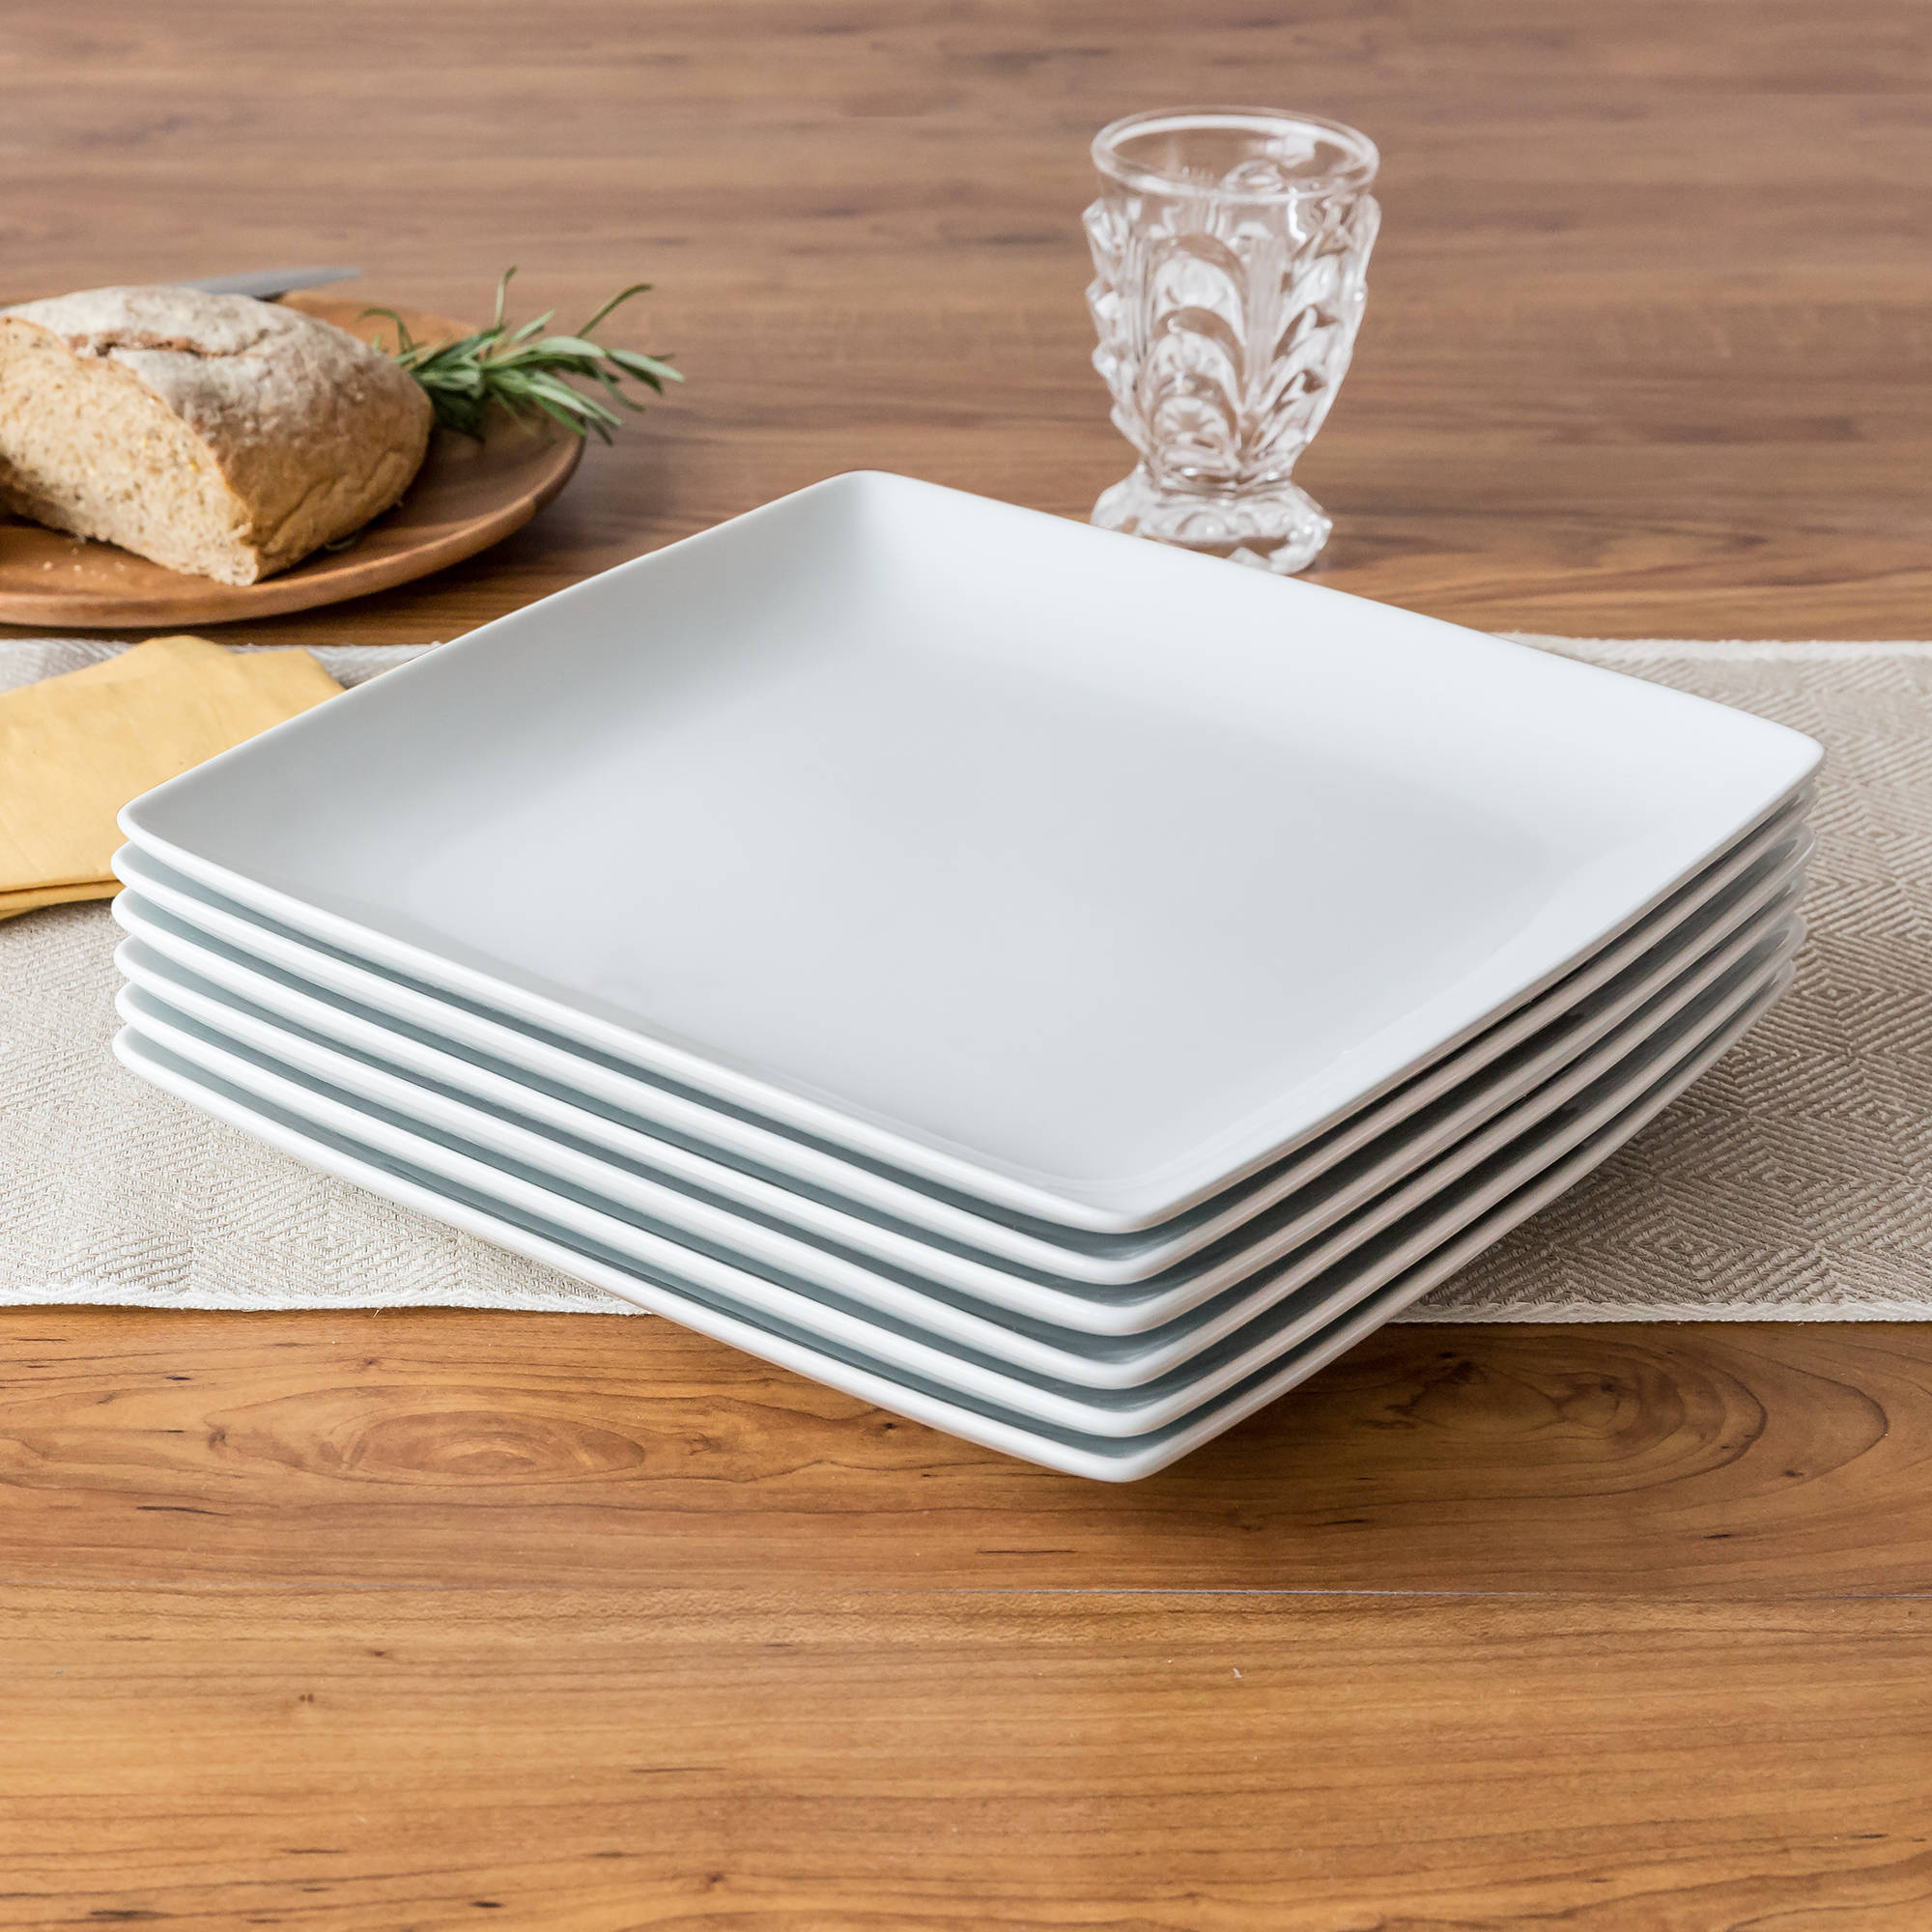 Better Homes and Gardens Coupe Square Dinner Plates, White, Set of 6